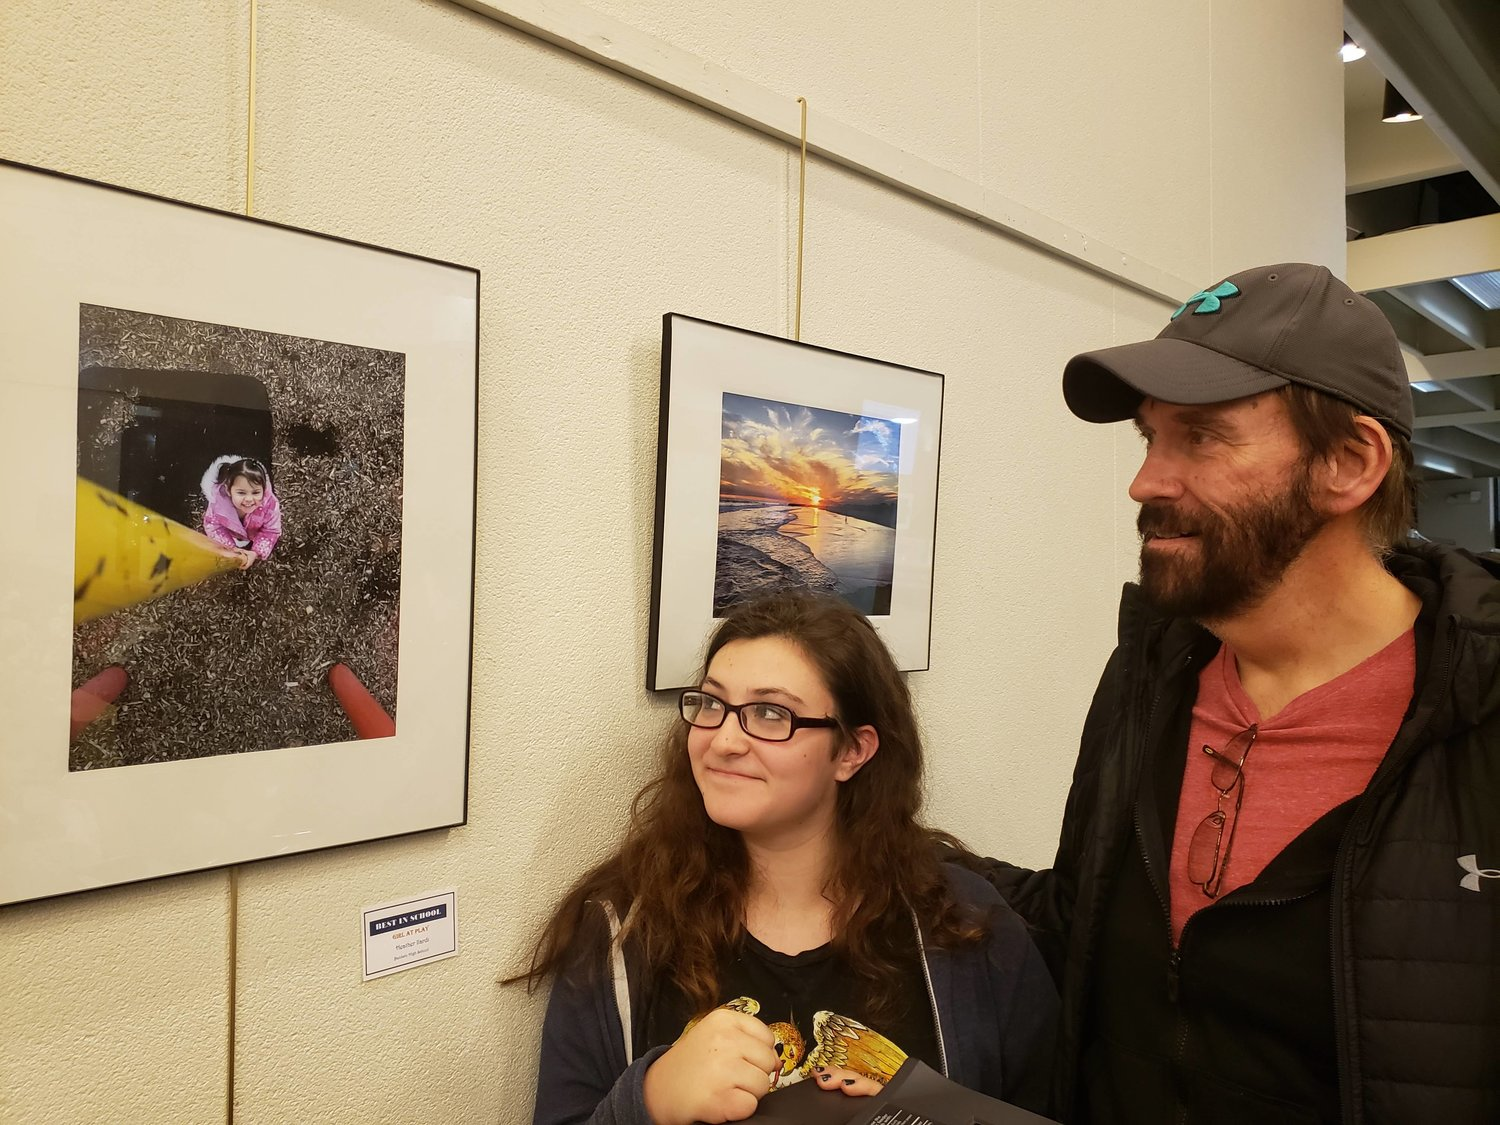 Baldwinite Heather Ilardi, 15, left, showed her grandfather Bill Gardner, from Riverhead, who is also a photographer, her Best in Show-winning photo.